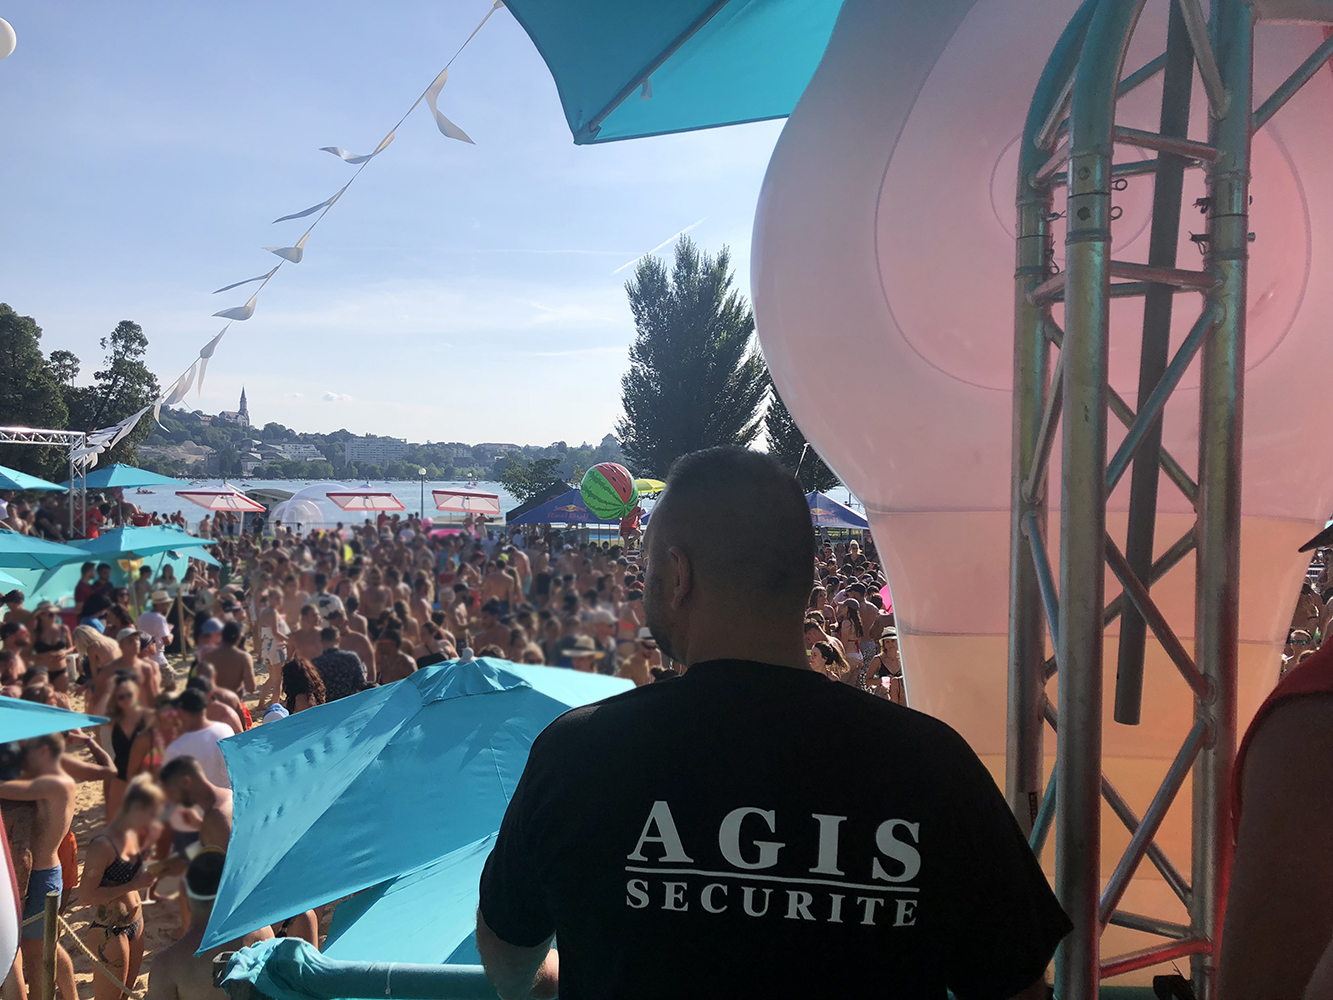 AGIS Securite - Suveillance manifestatio